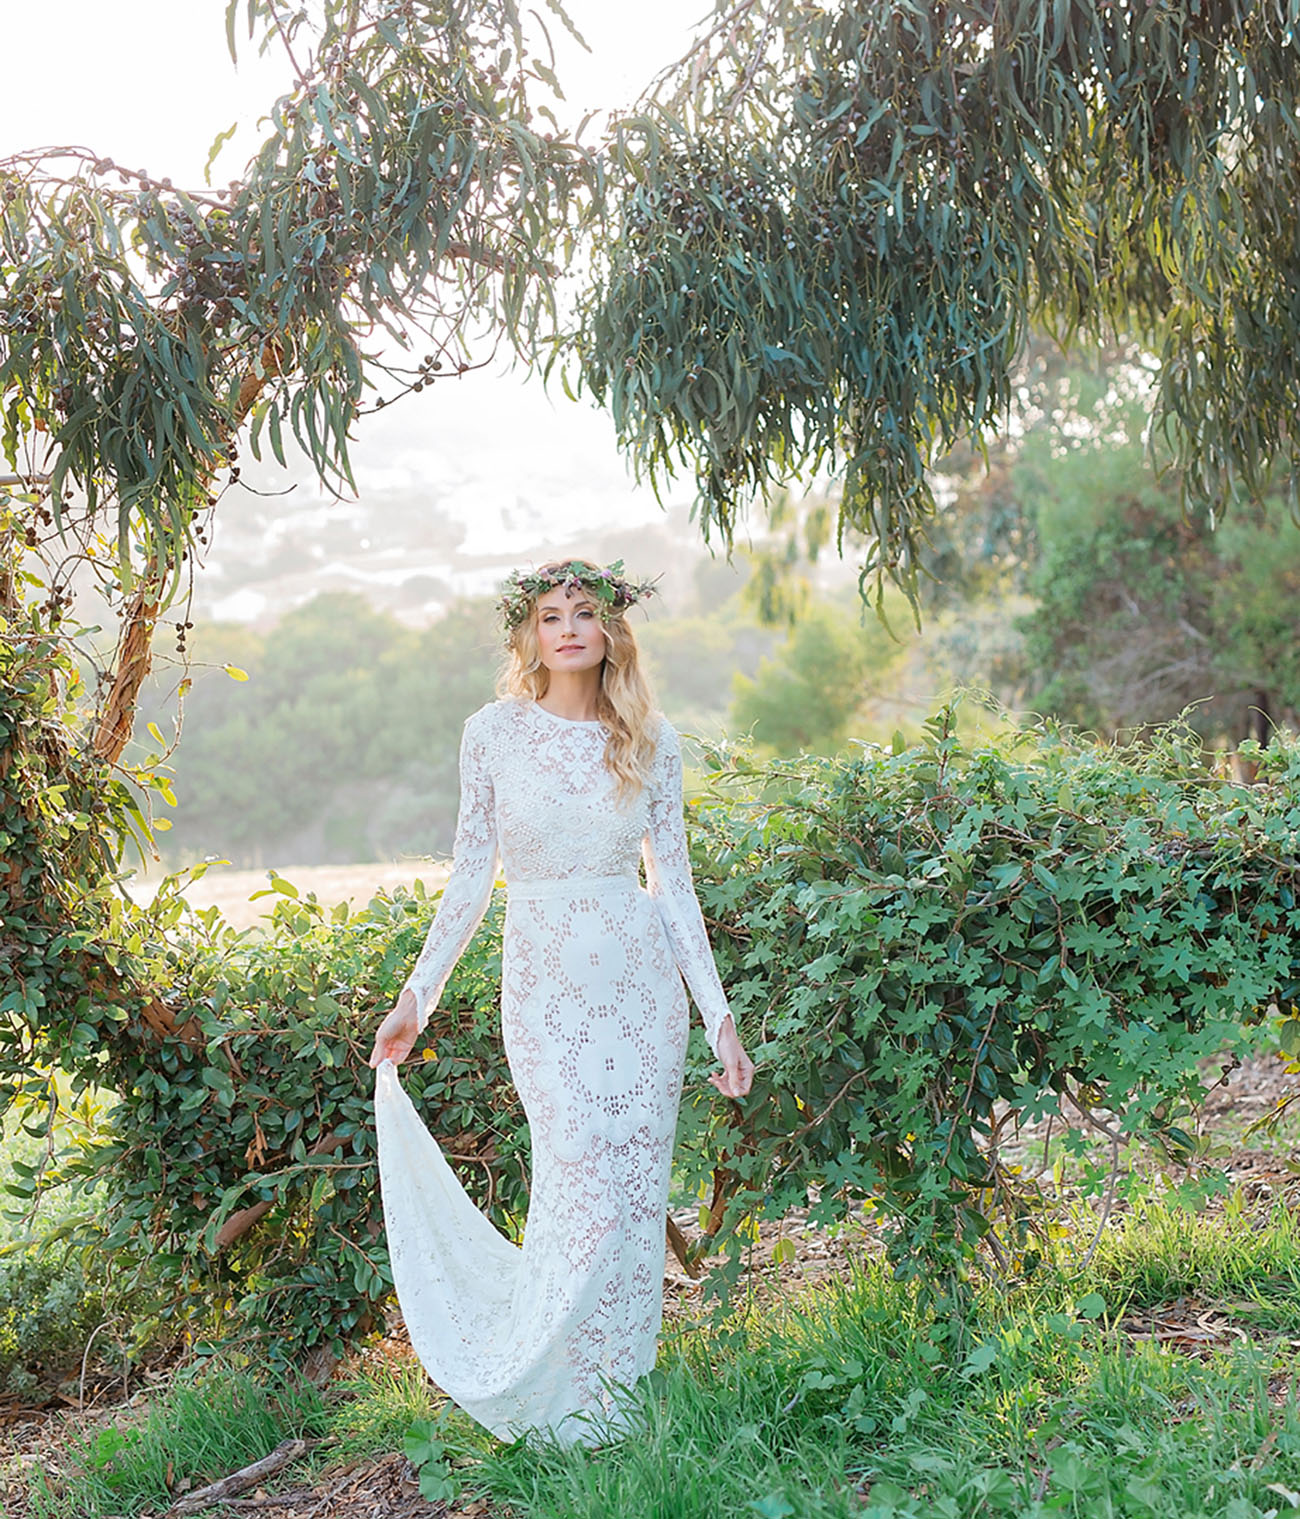 One-Of-A-Kind Wedding Dresses from Saldana Vintage